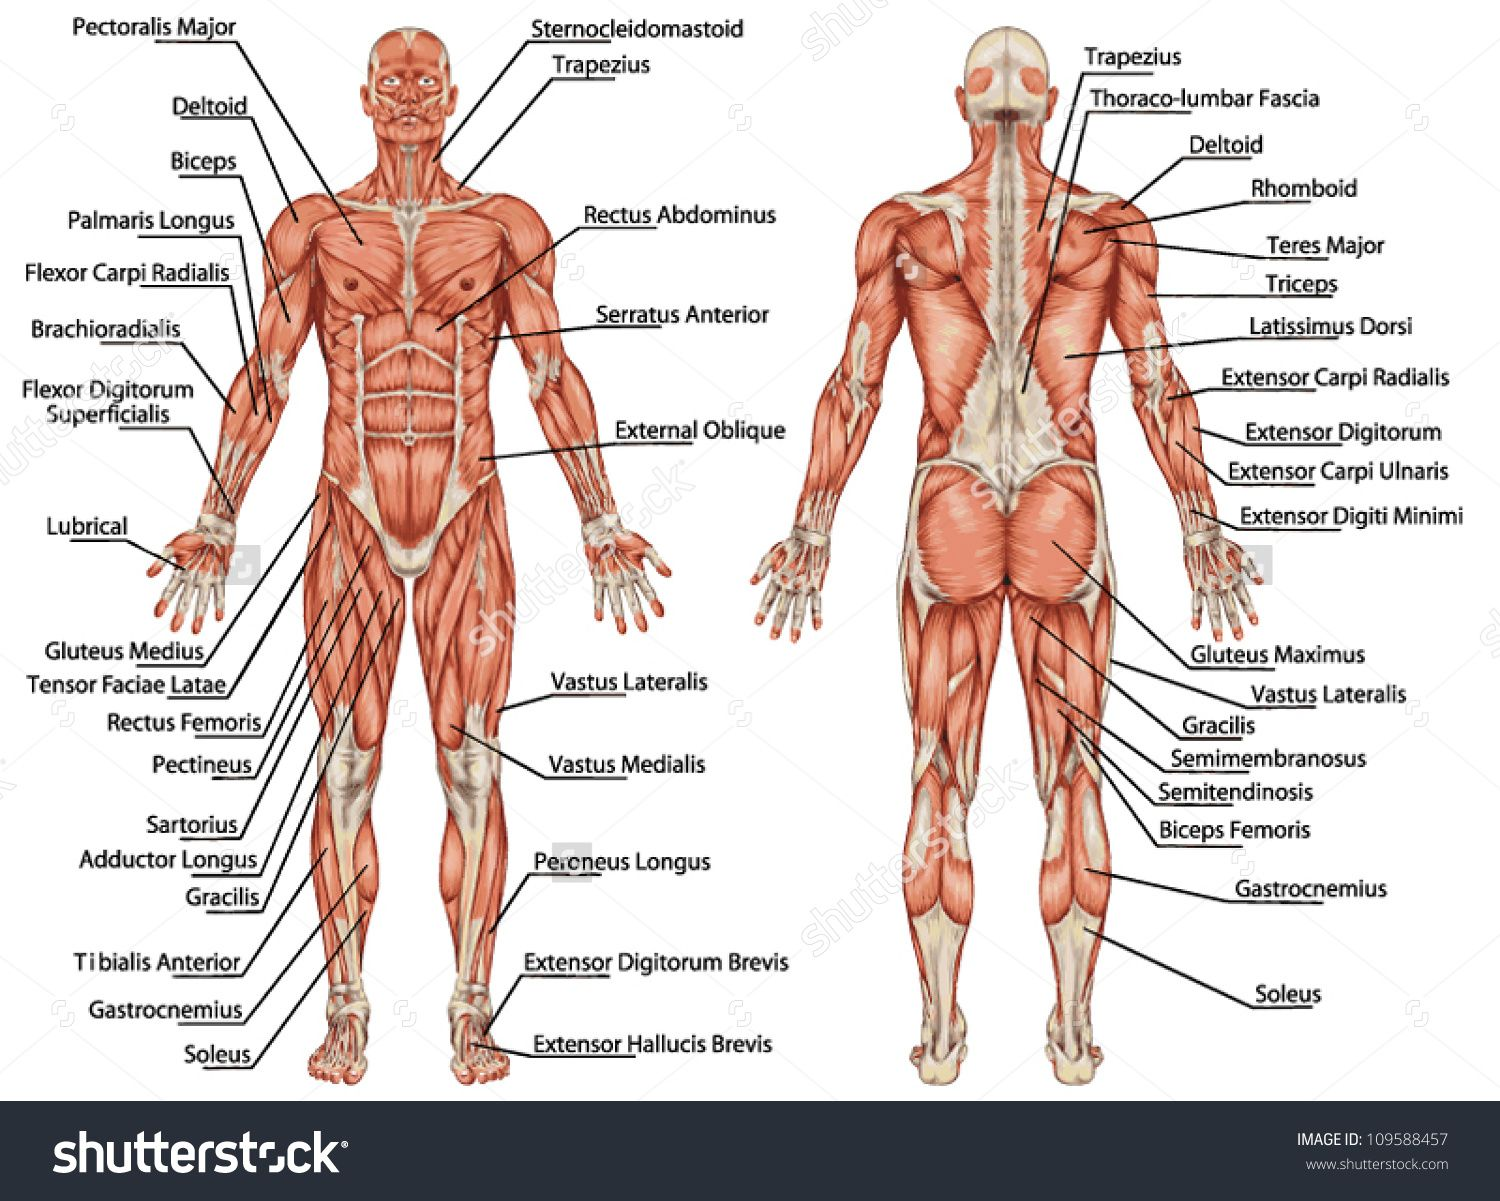 Image result for muscle diagram of male body | F17 MENS ...